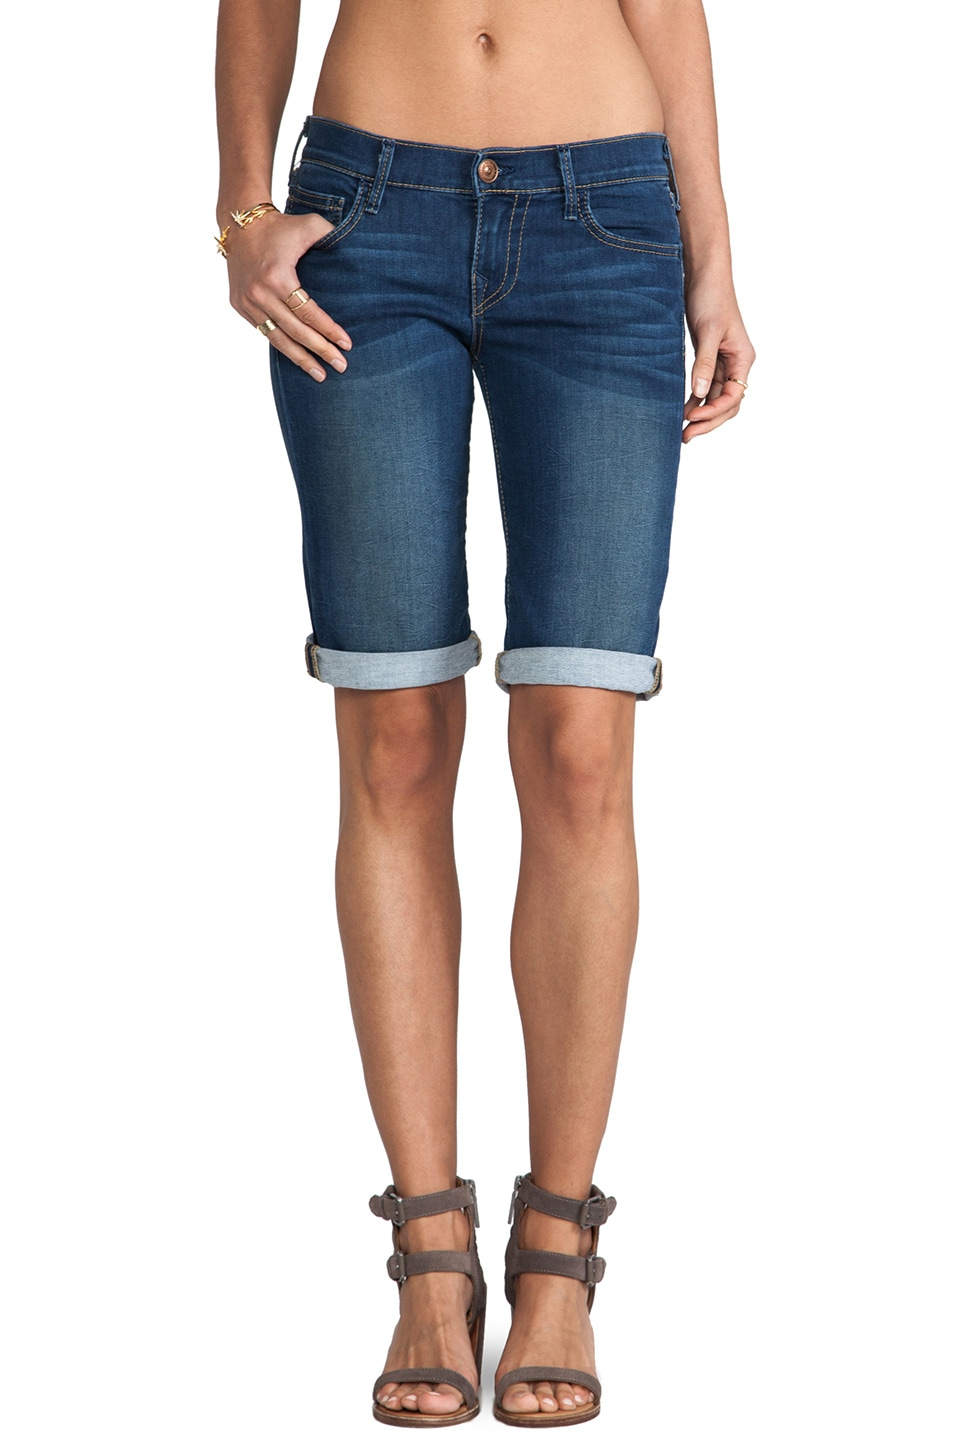 True Religion Savannah Cuffed Short in Ocean Madness